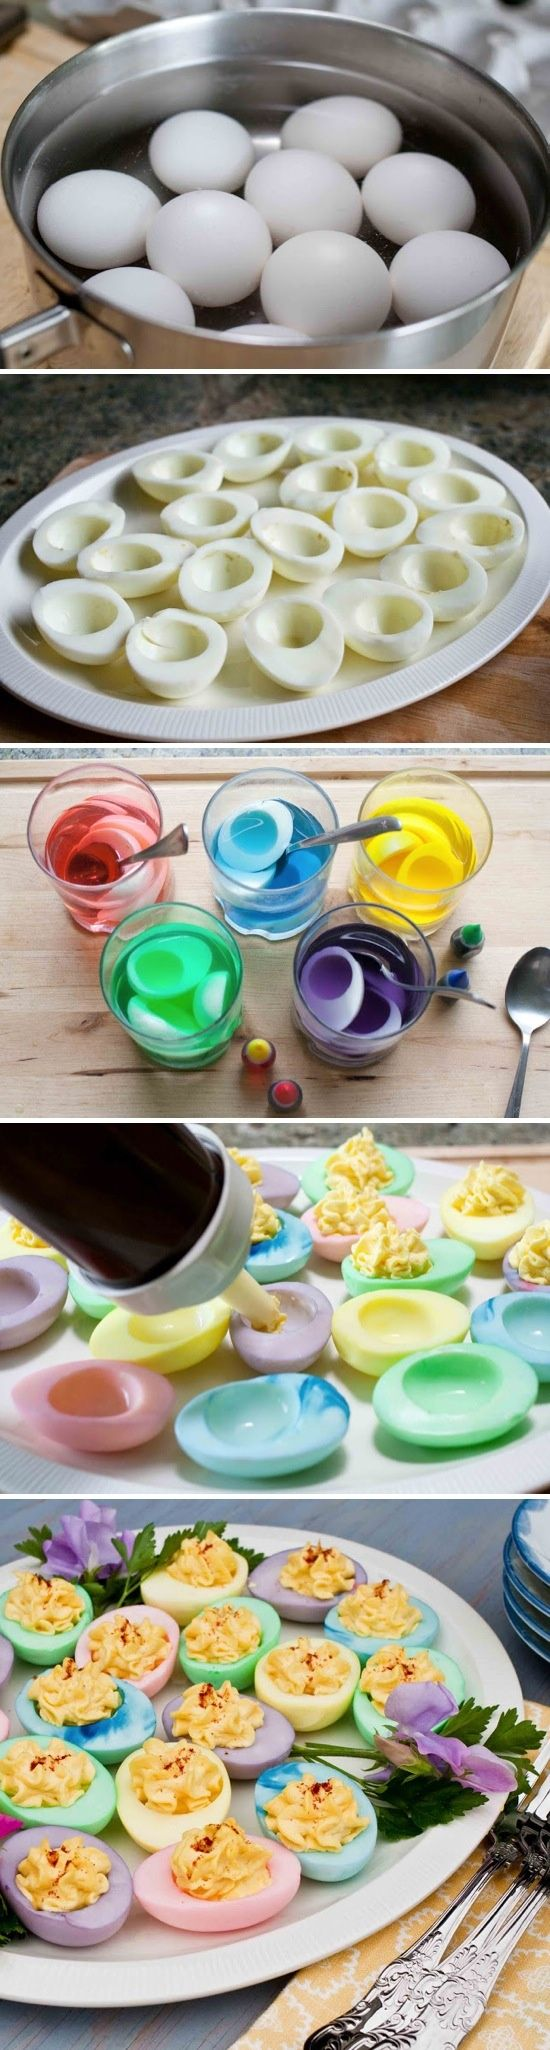 Colorful pealedl easter eggs food coloring vinegar for dye boil colorful pealedl easter eggs food coloring vinegar for dye boil cool forumfinder Images